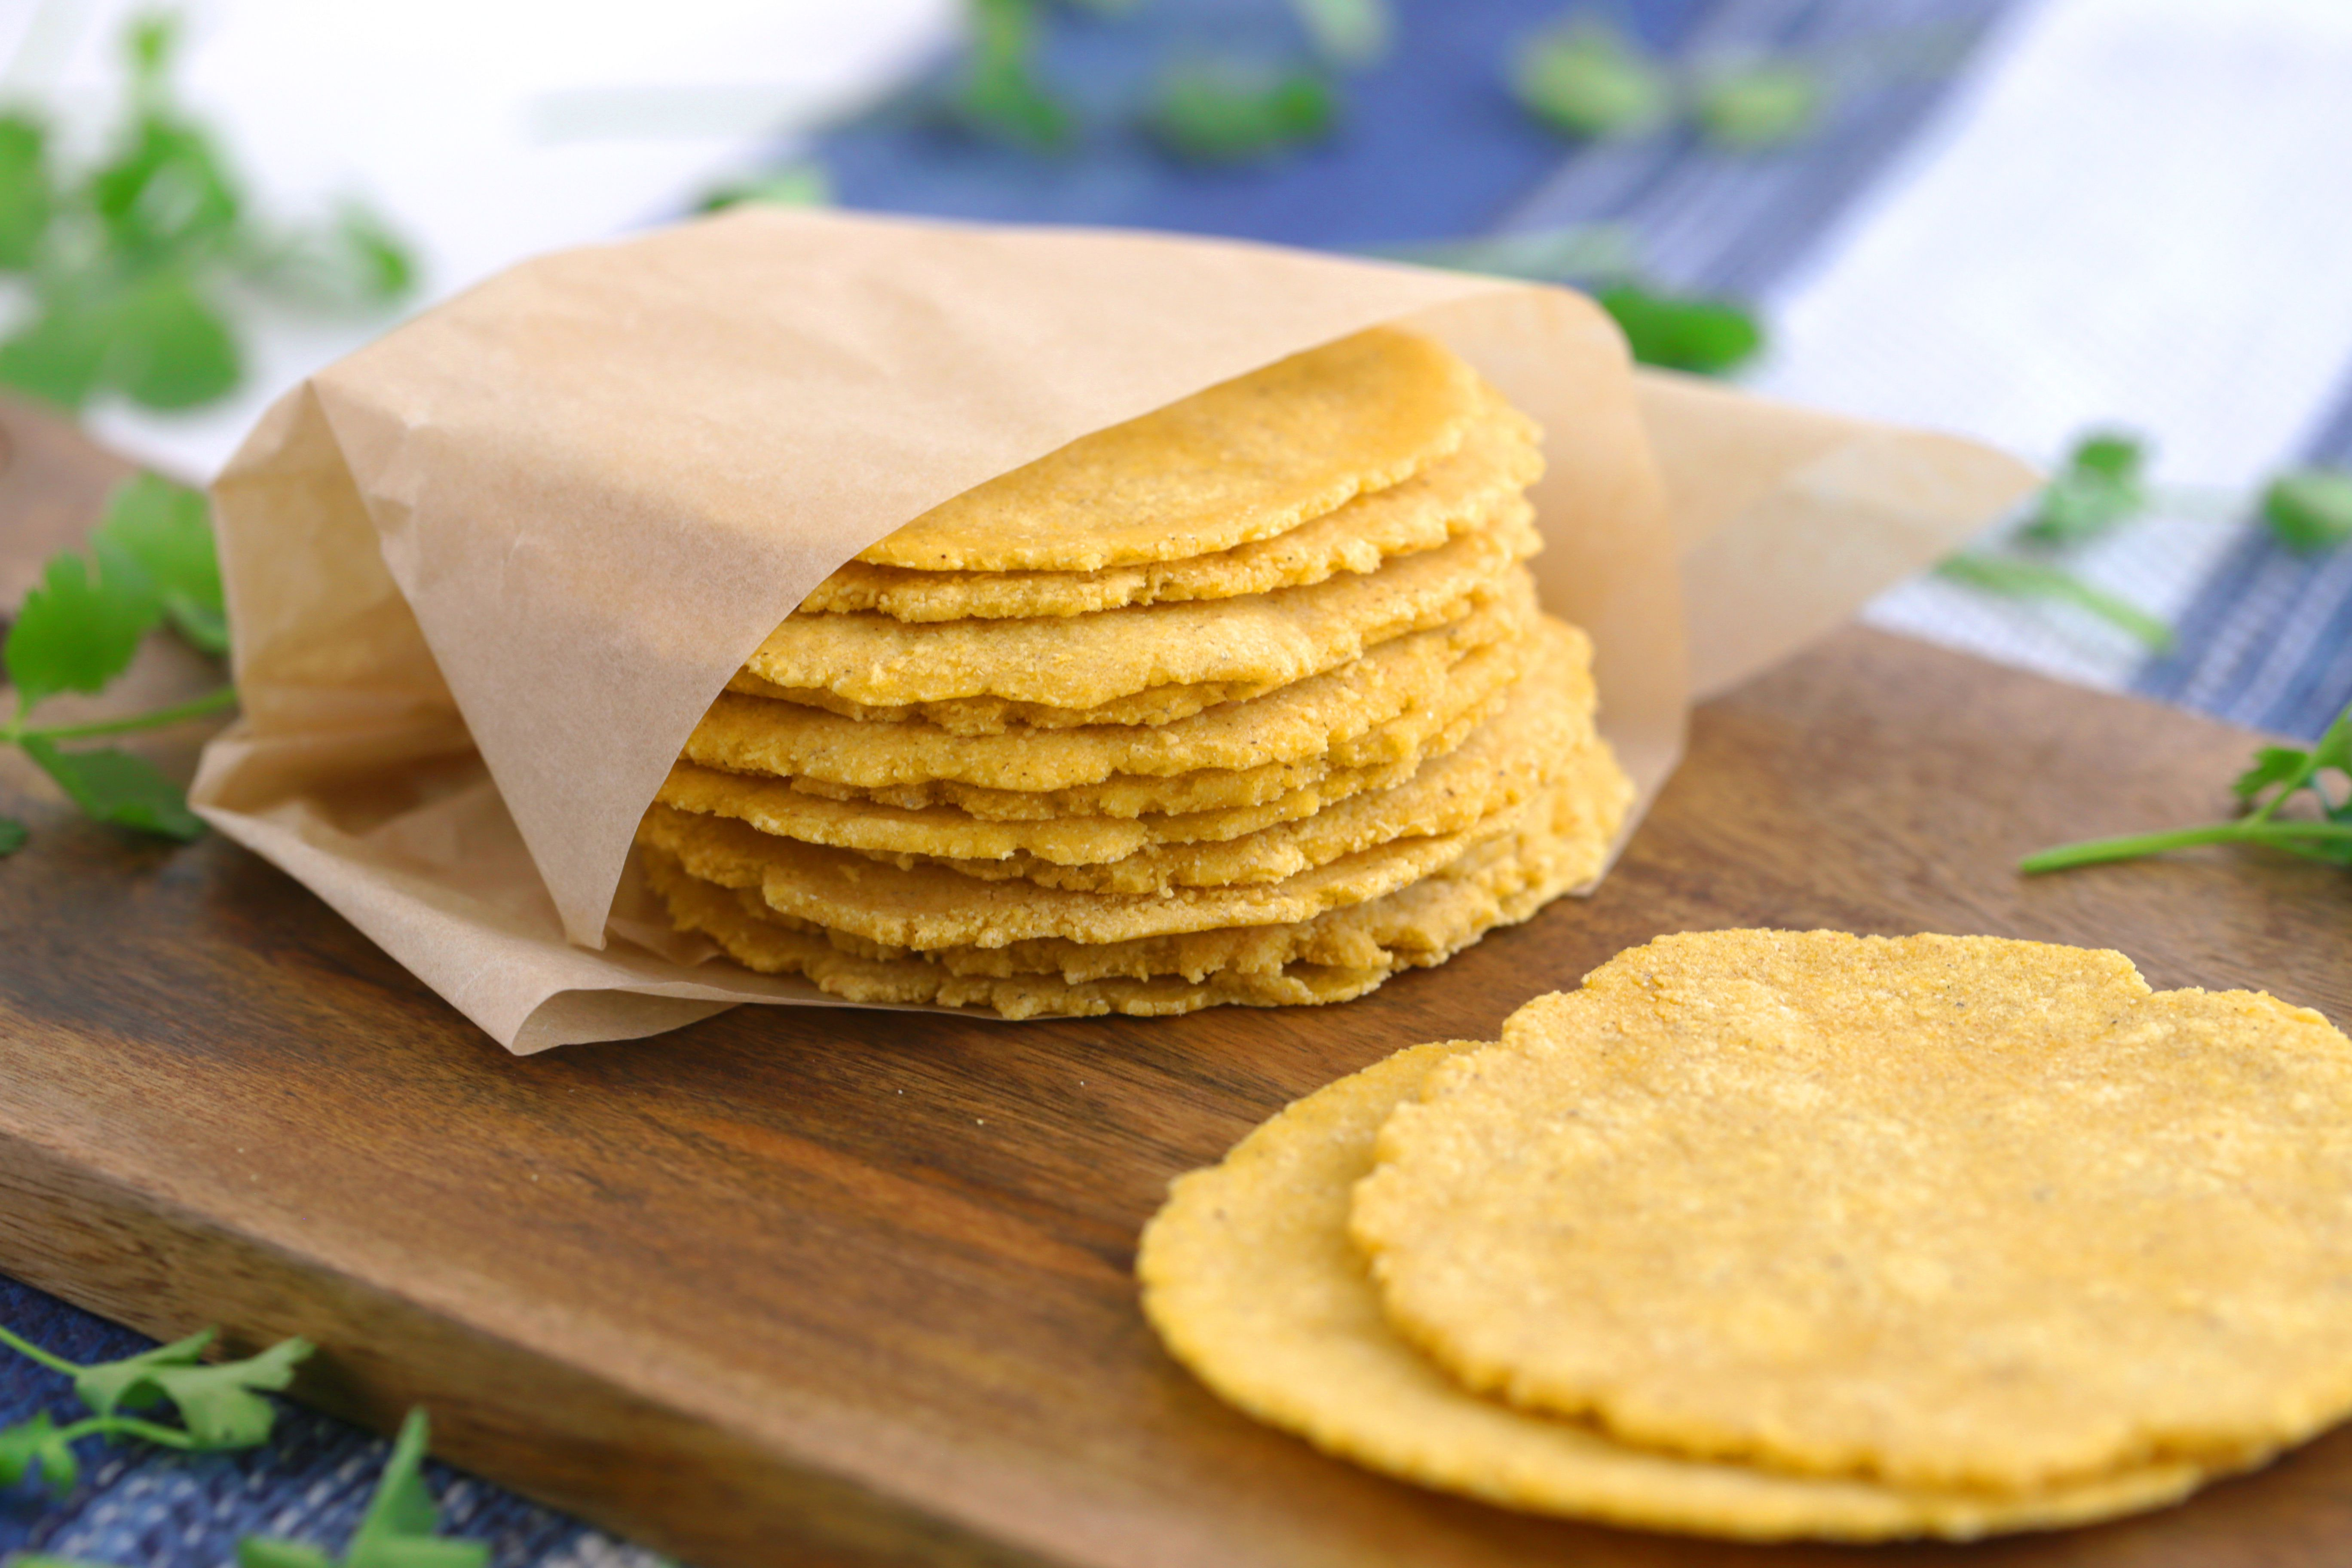 Homemade Corn Tortillas 3 Ingredients Gluten Free Mind Over Munch Recipe Homemade Corn Tortillas Corn Tortillas Ingredients Recipes